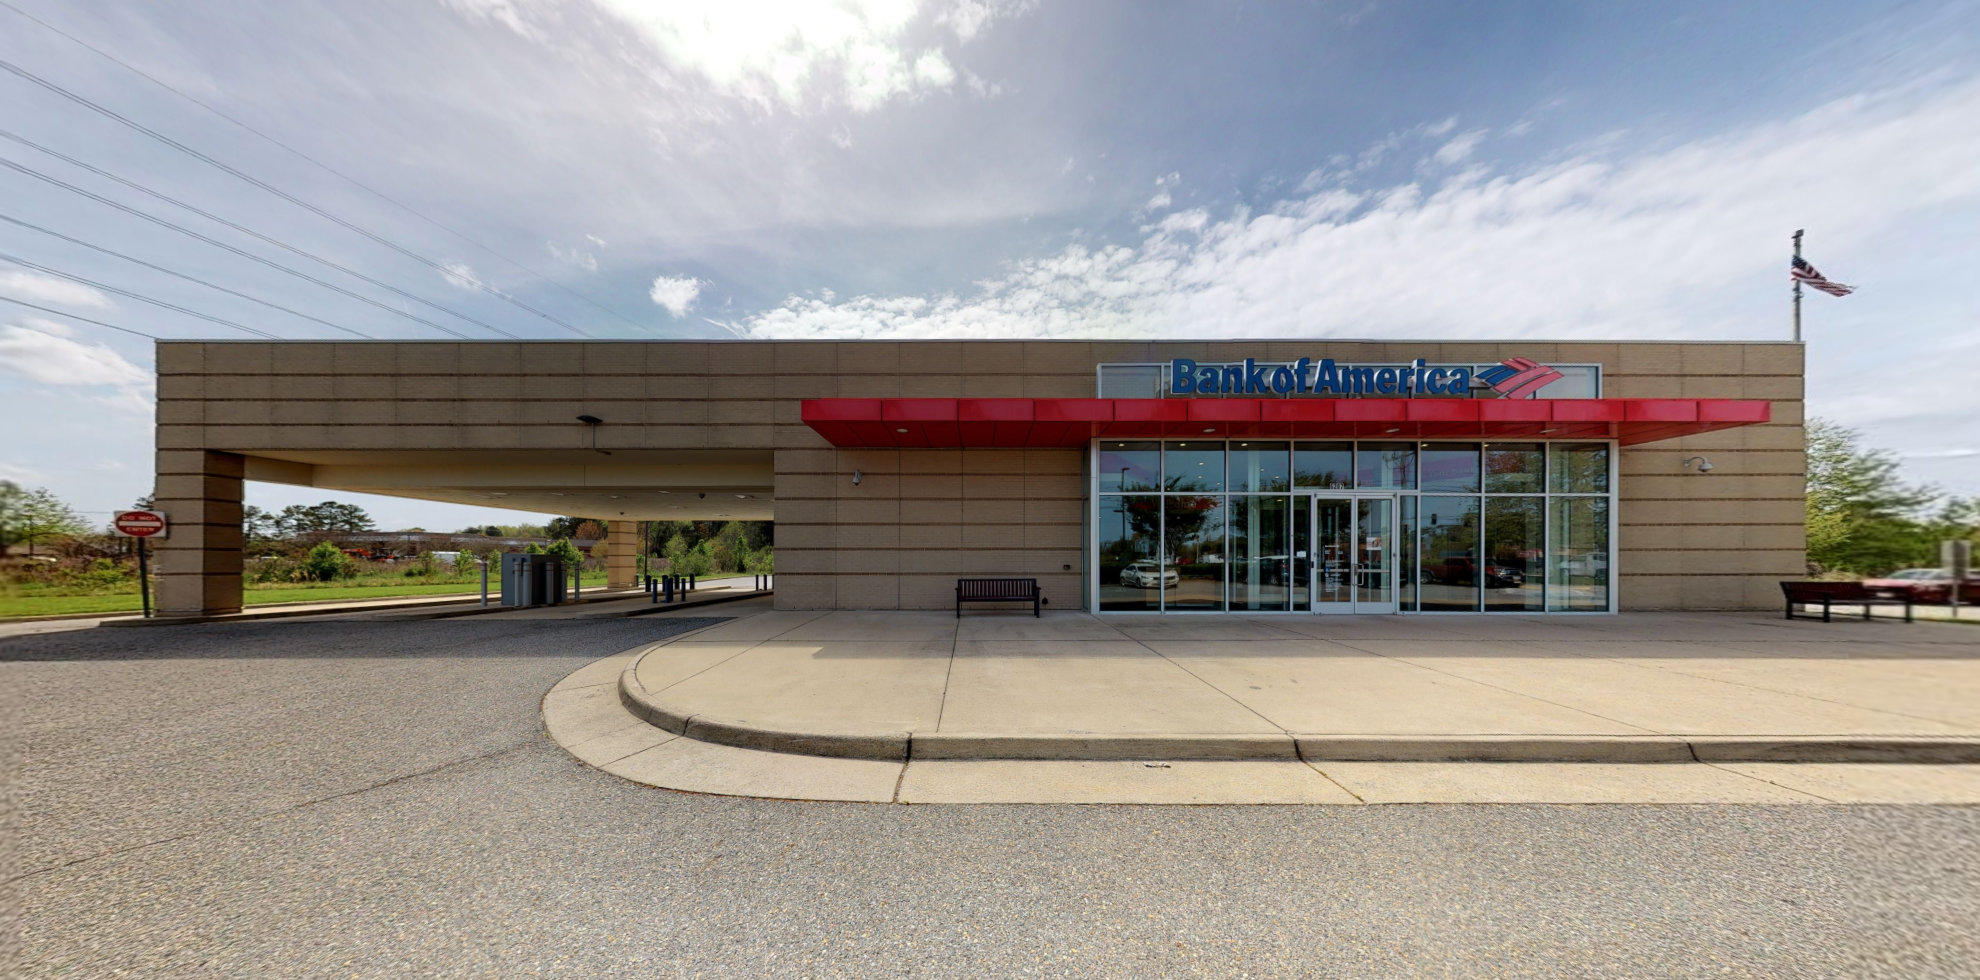 Bank of America financial center with drive-thru ATM   6207 College Dr, Suffolk, VA 23435